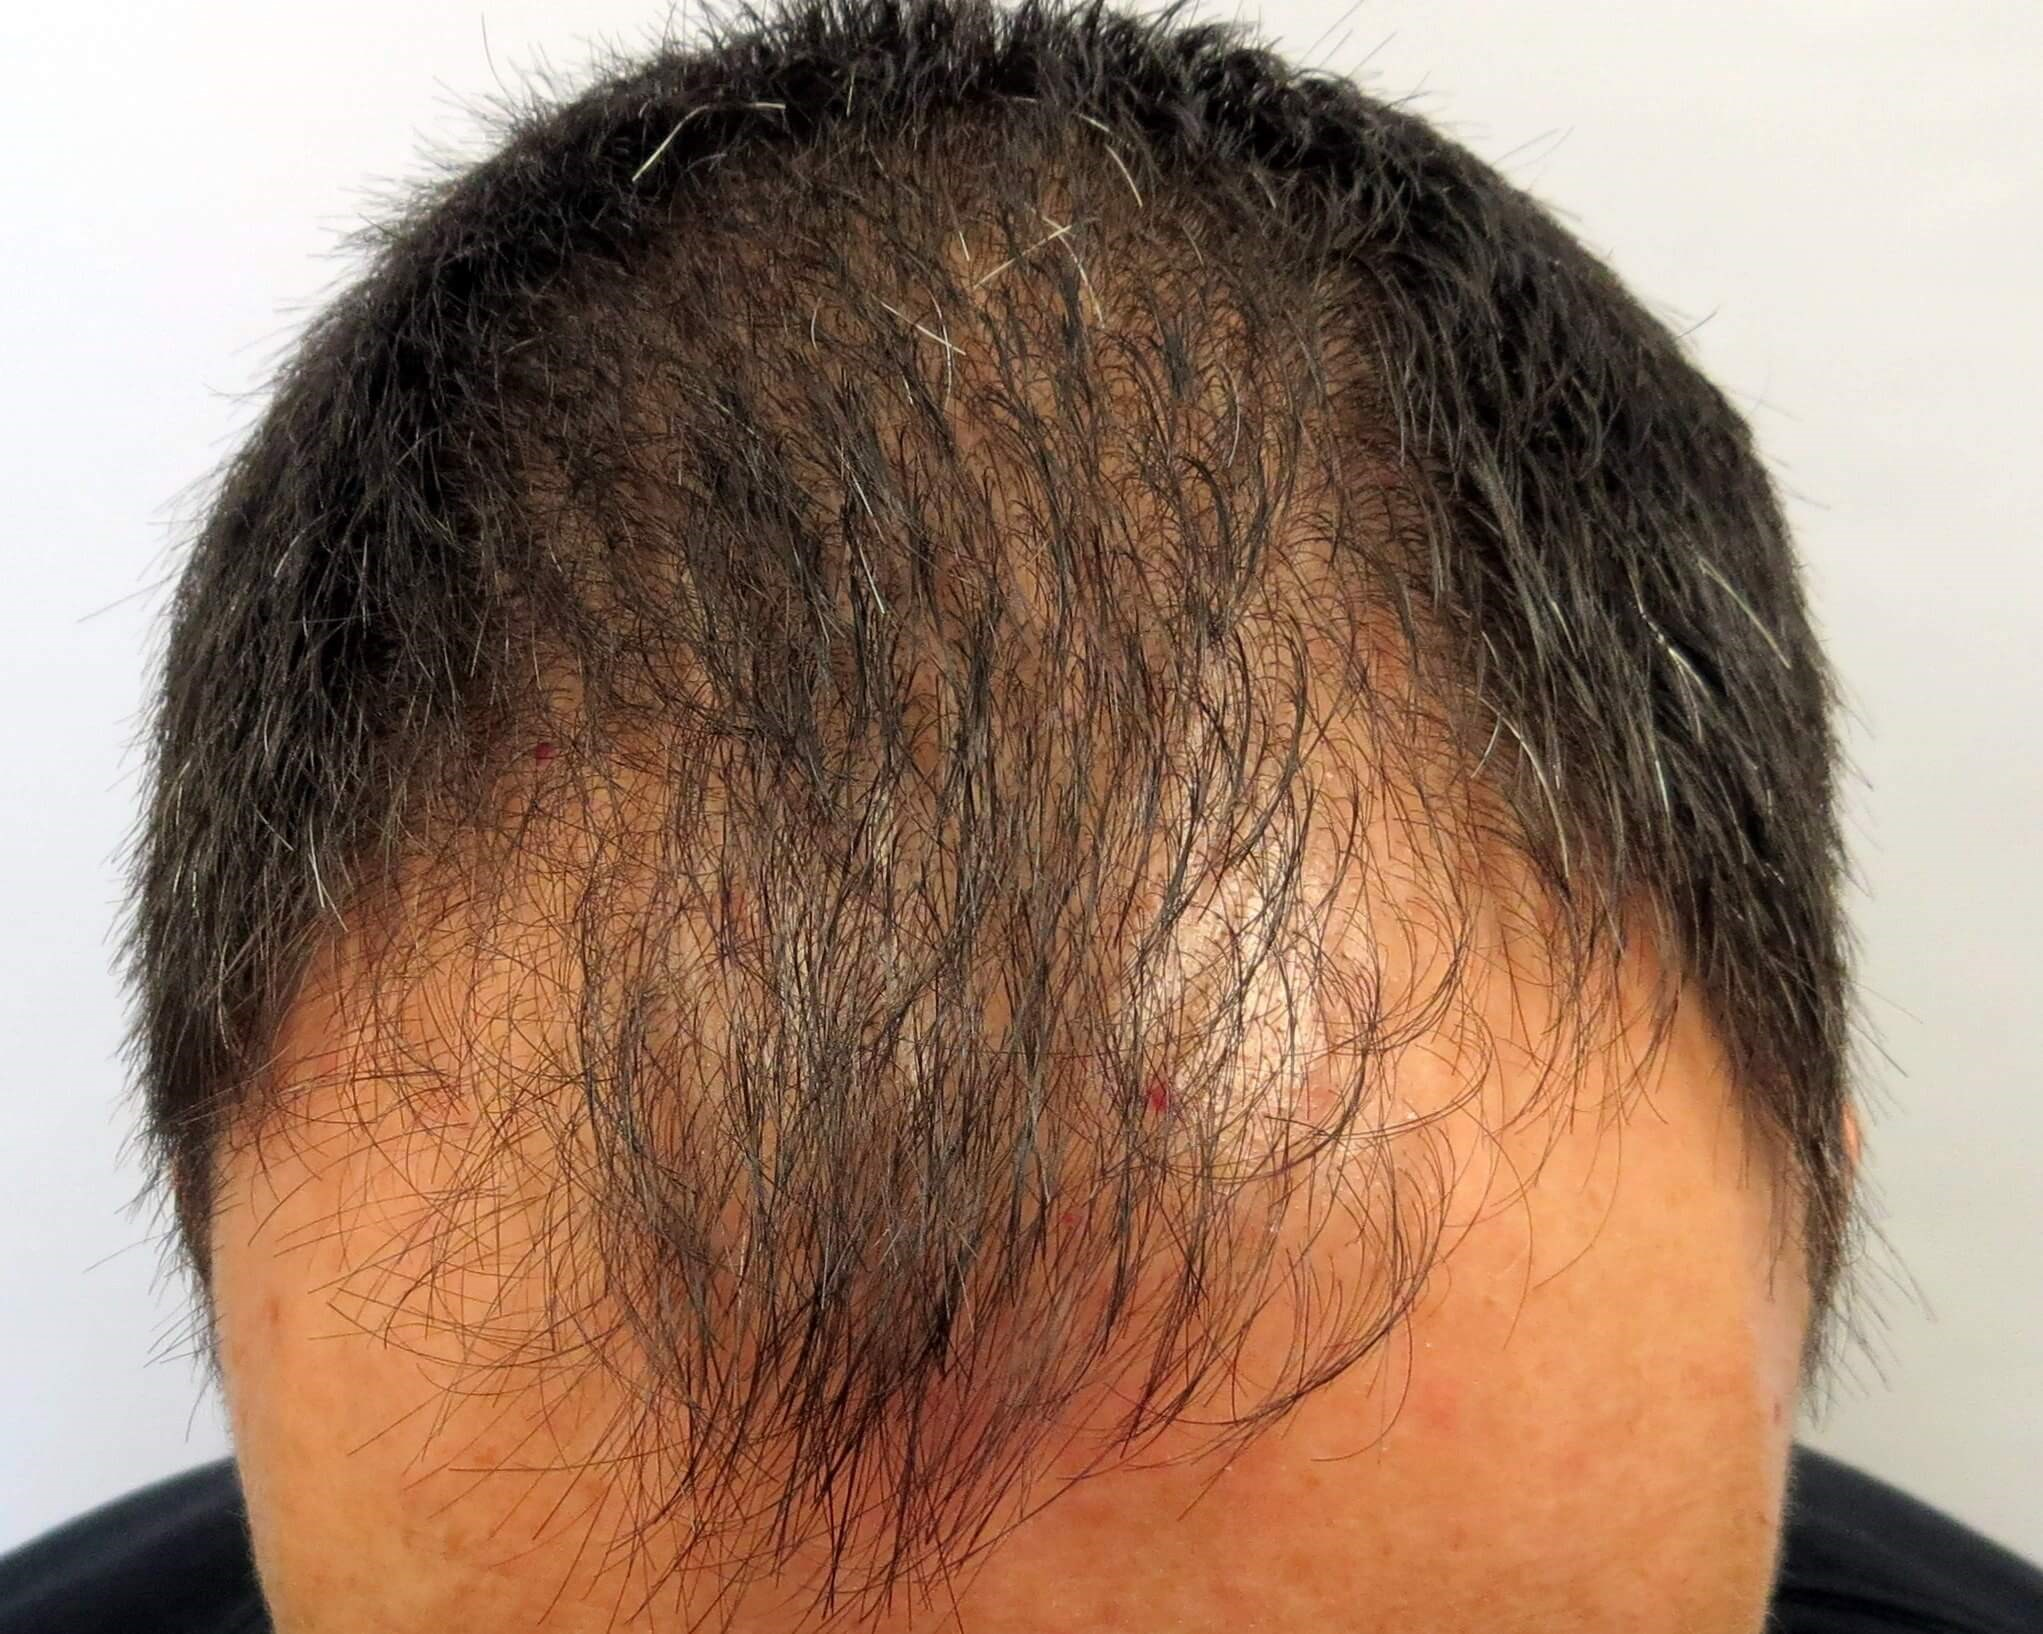 PRP simulates hair growth - LV Hair 10 months After PRP